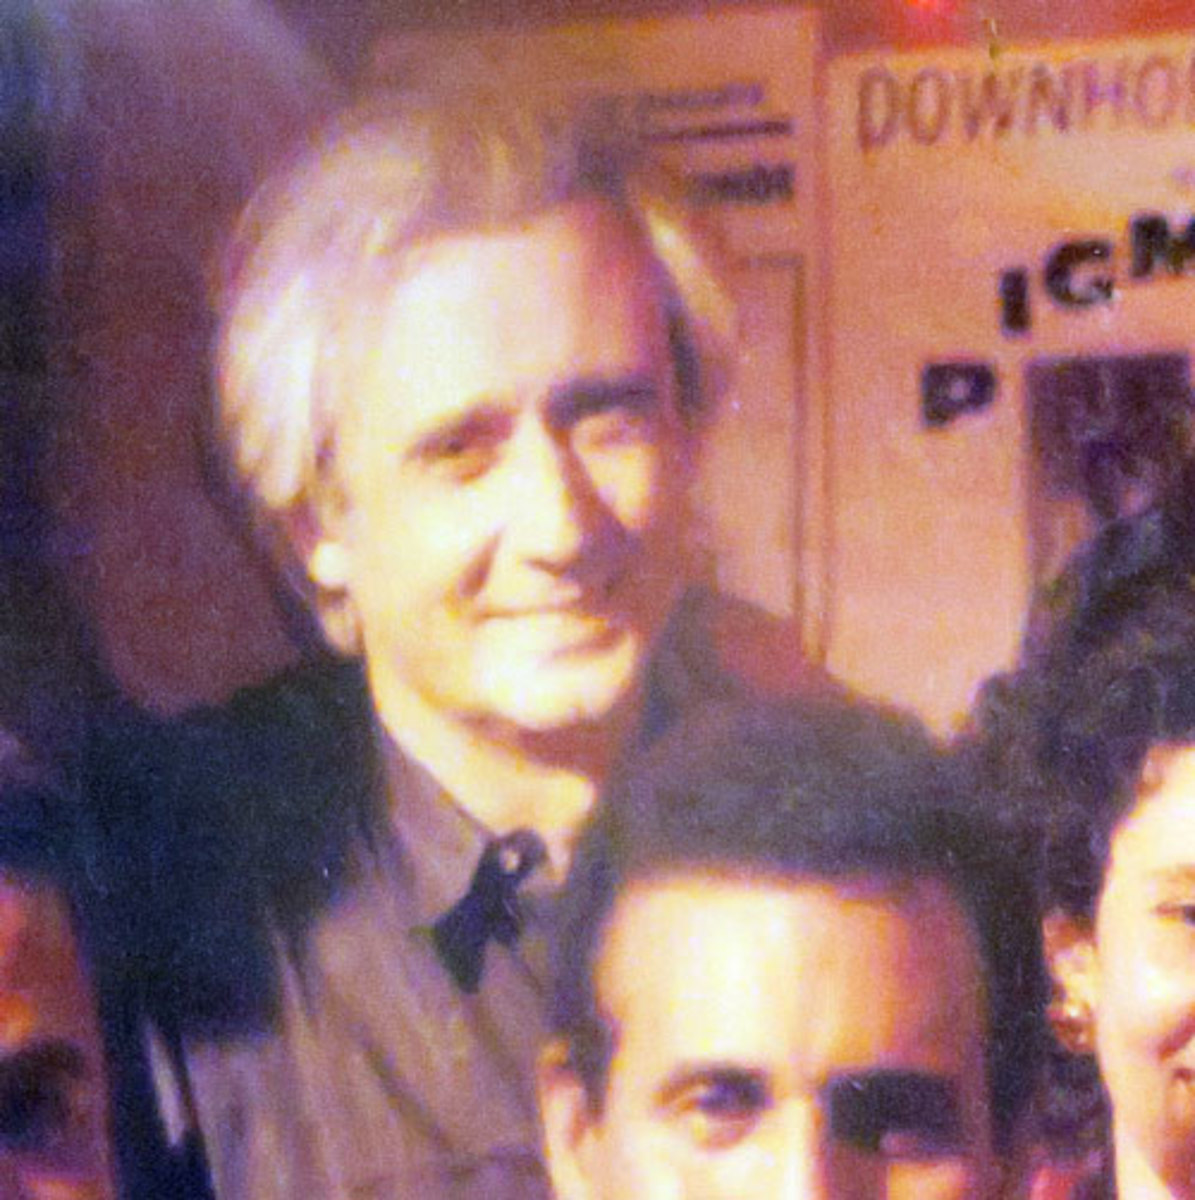 Jacques Boni, Trois Mailletz owner/director, in the early 1990s